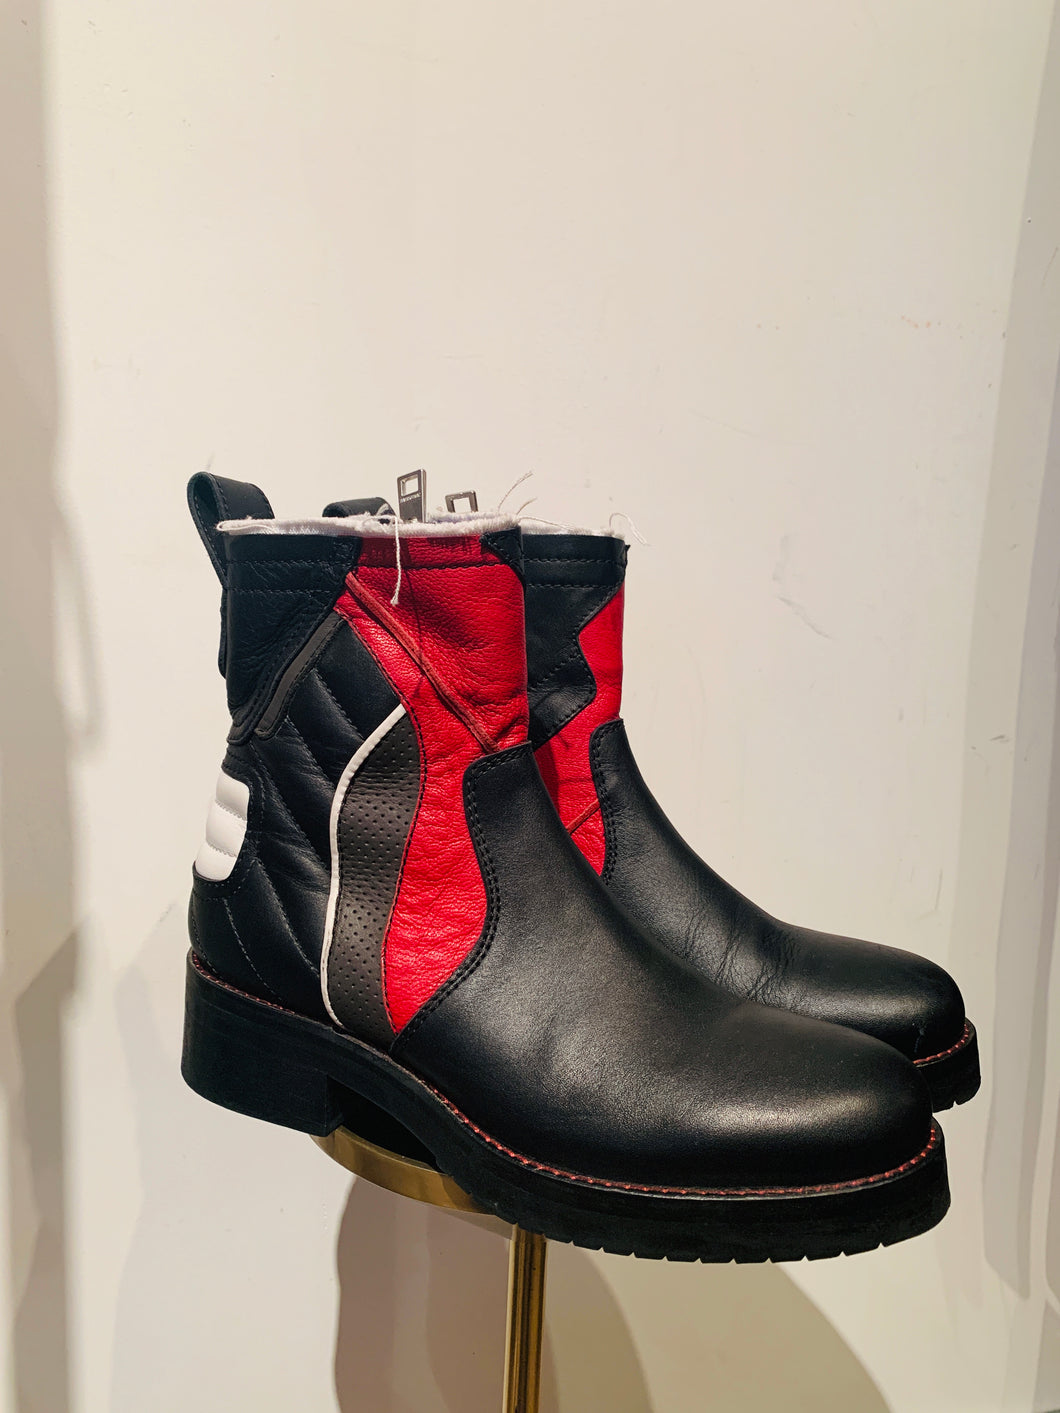 Zadig & Voltaire Multicolor Leather  Round-Toe Ankle Boots